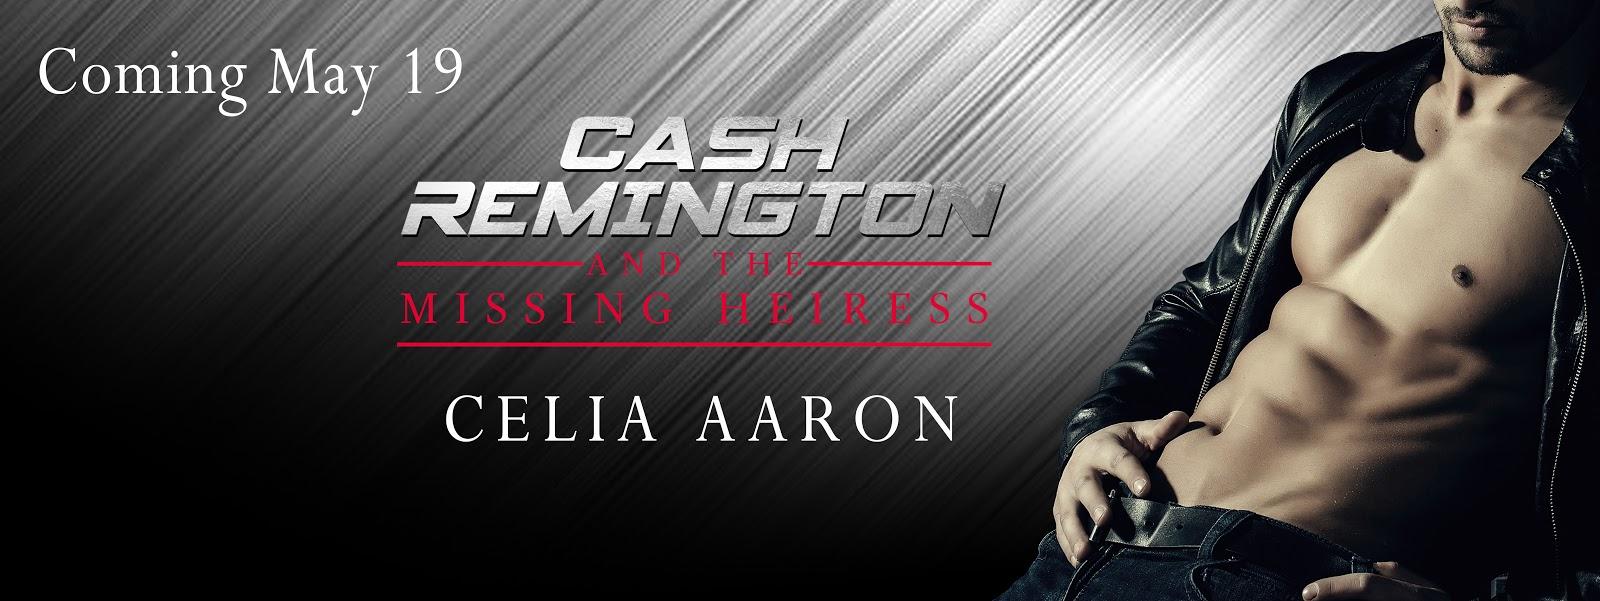 Cash Remington and the Missing Heiress Banner.jpg